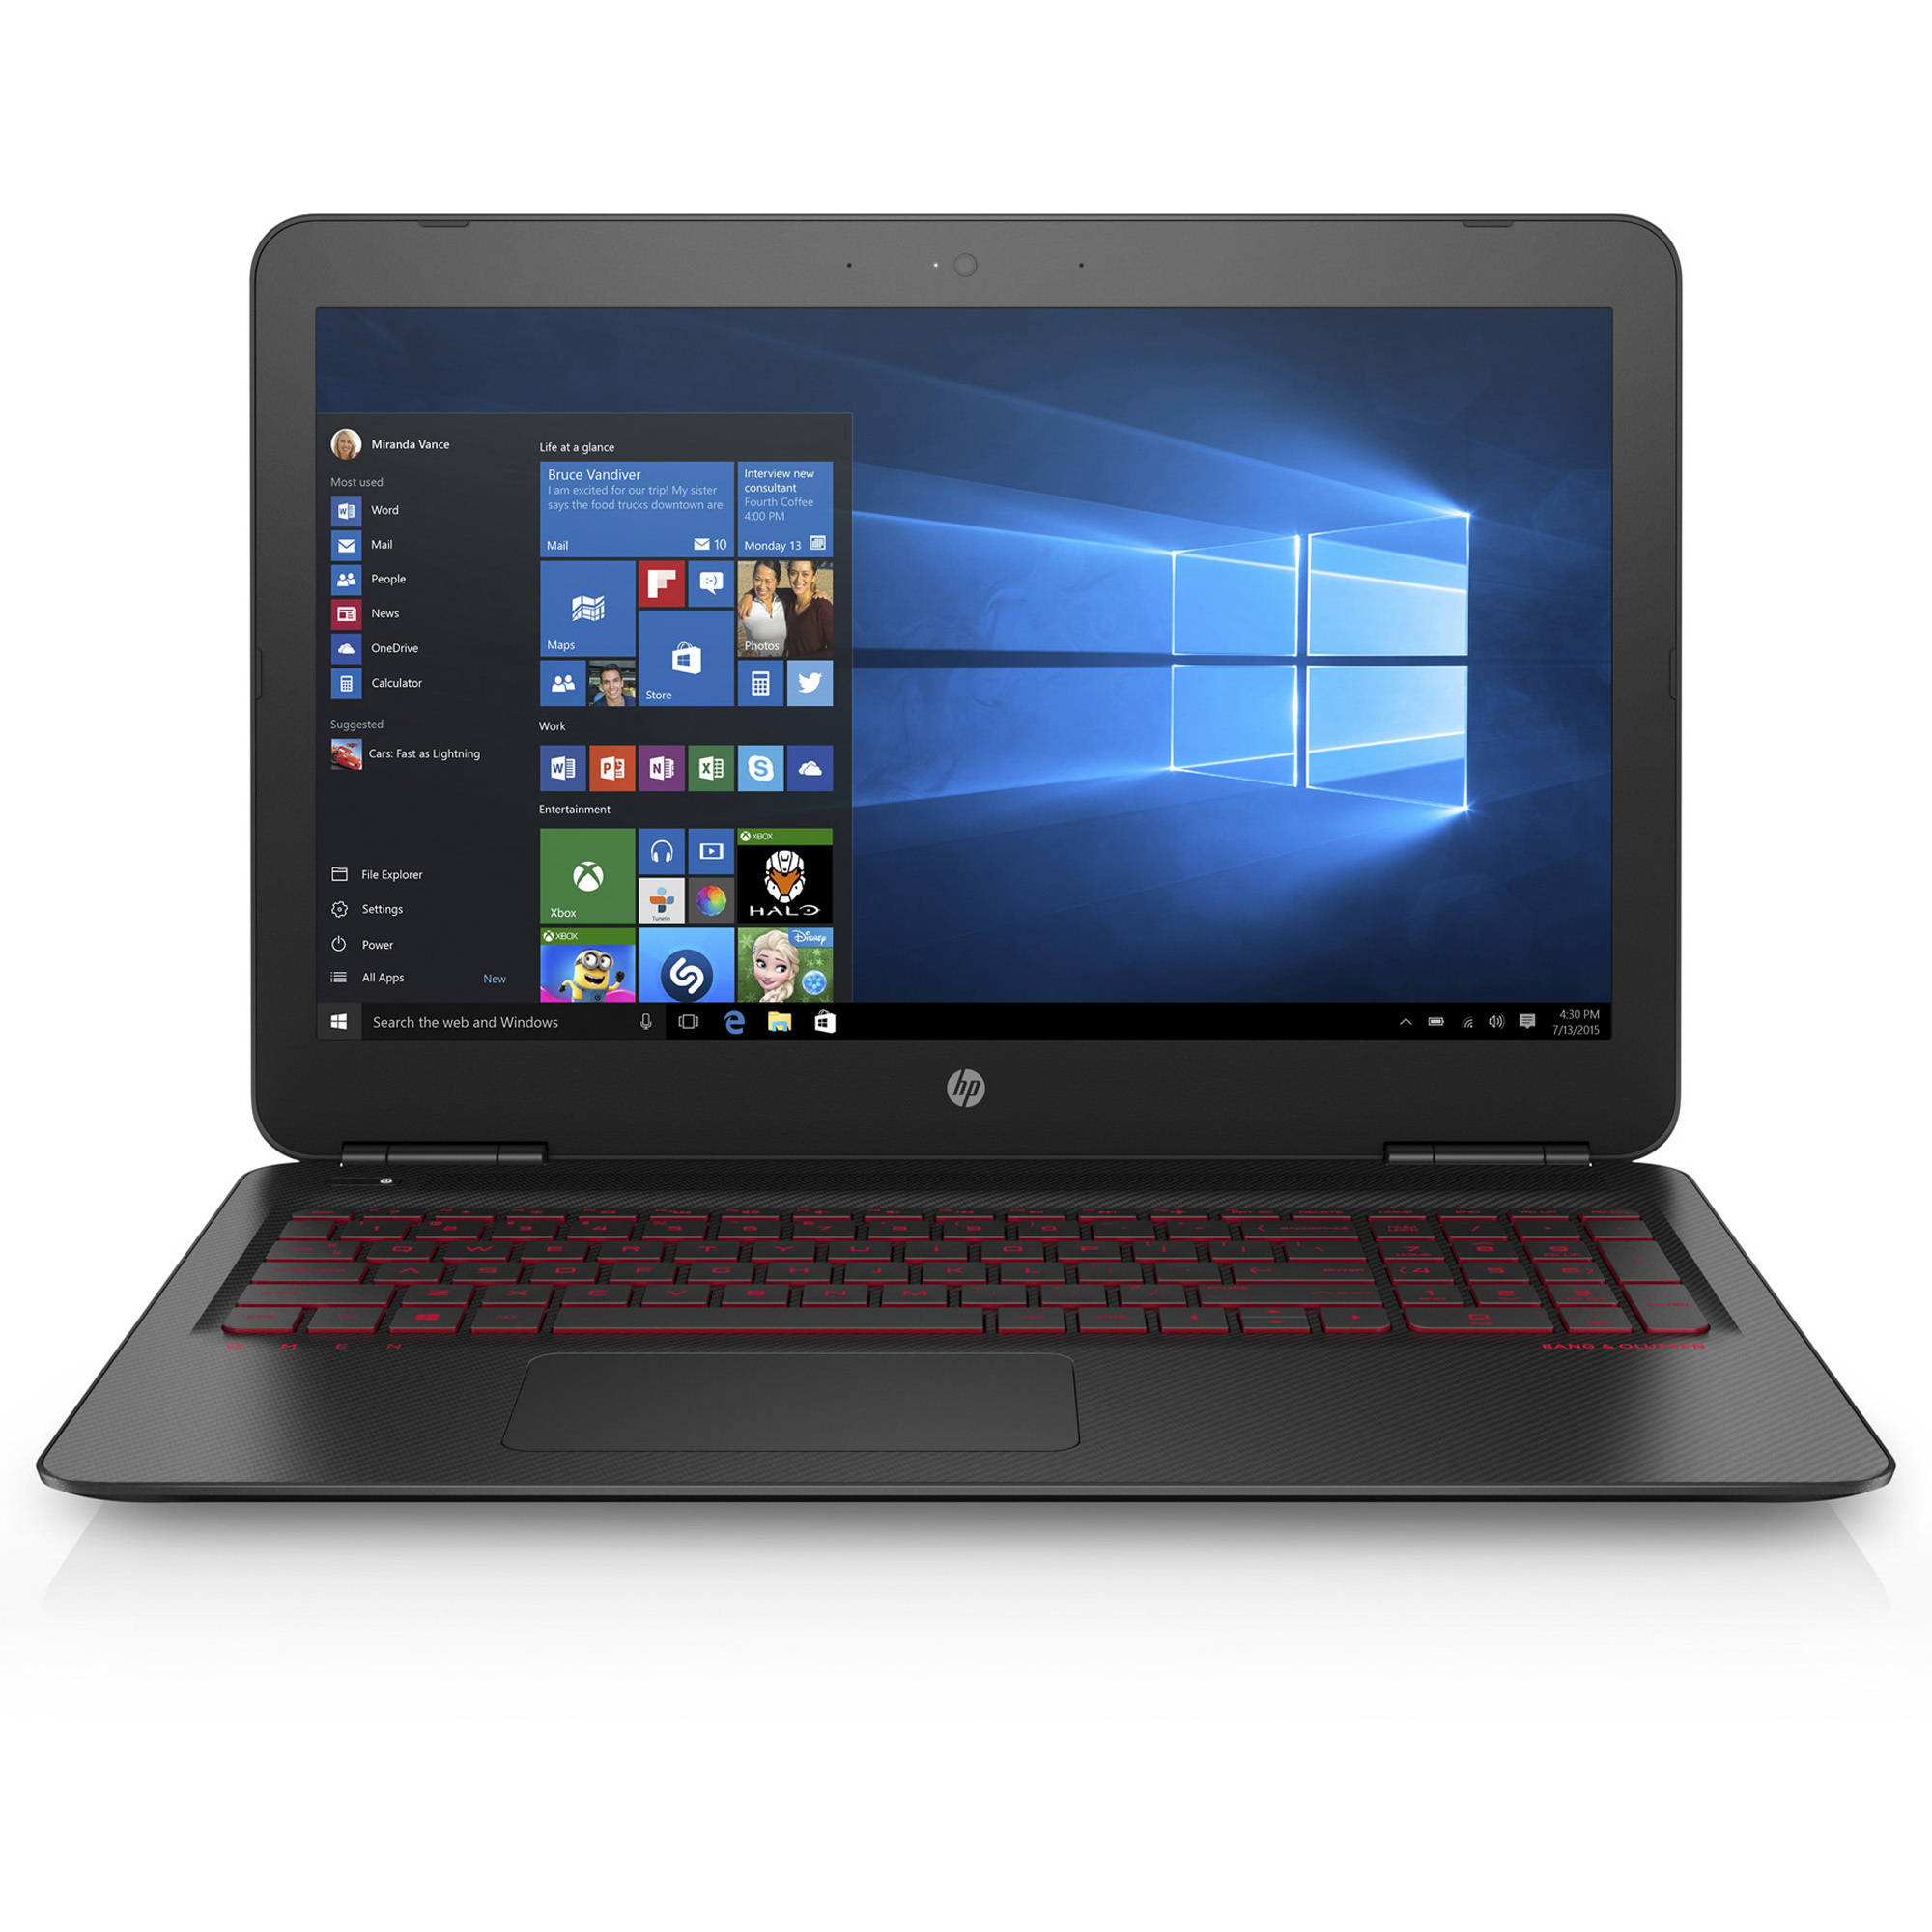 "HP Omen Laptop 17.3"" FHD Screen, Intel Core i7-7700HQ, 2.8GHZ, NVIDIA GeForce GTX 1050Ti 4GB GDDR5 Graphic Card, 8GB DDR4, 1TB HD 128GB SSD, Windows Home 10, HP 17-W210Nr"